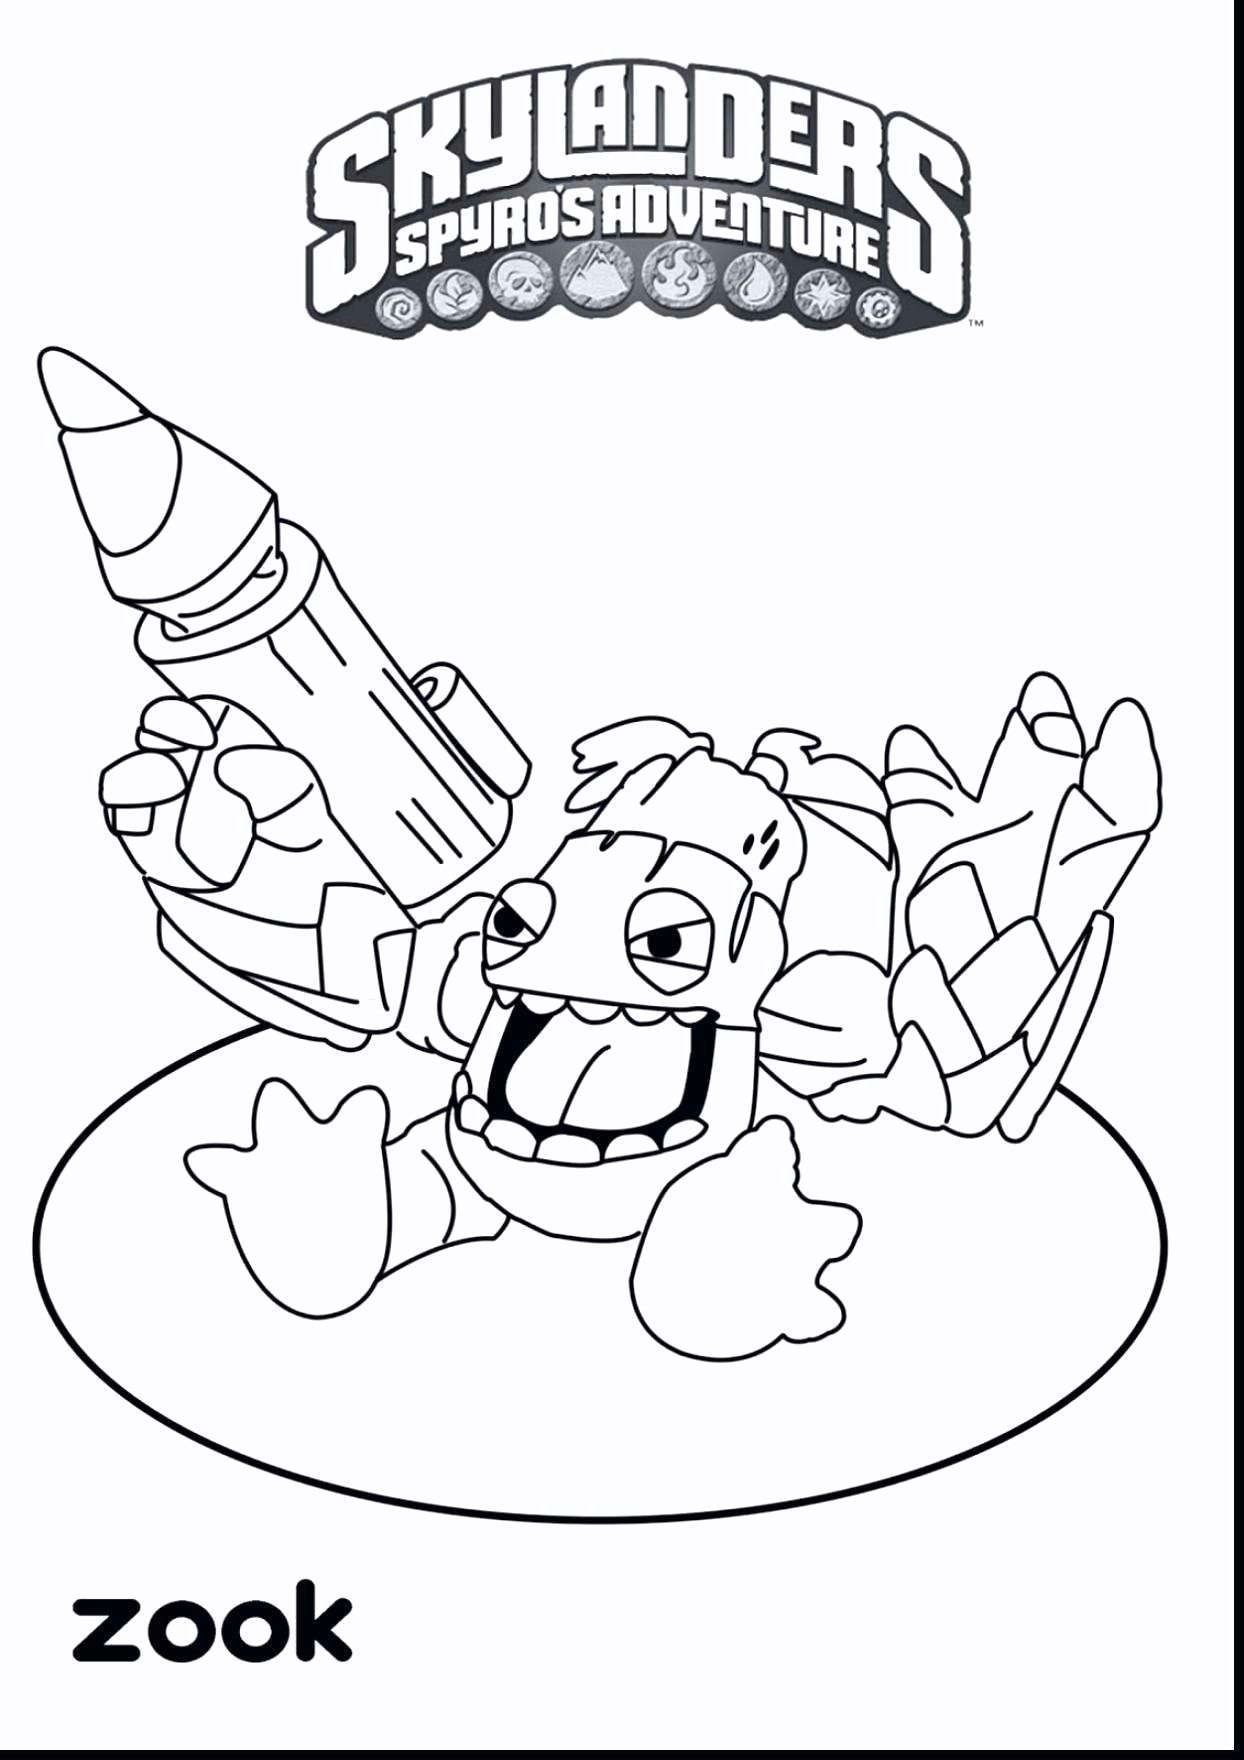 American Flag Coloring Pages for Preschool  Gallery 15n - To print for your project